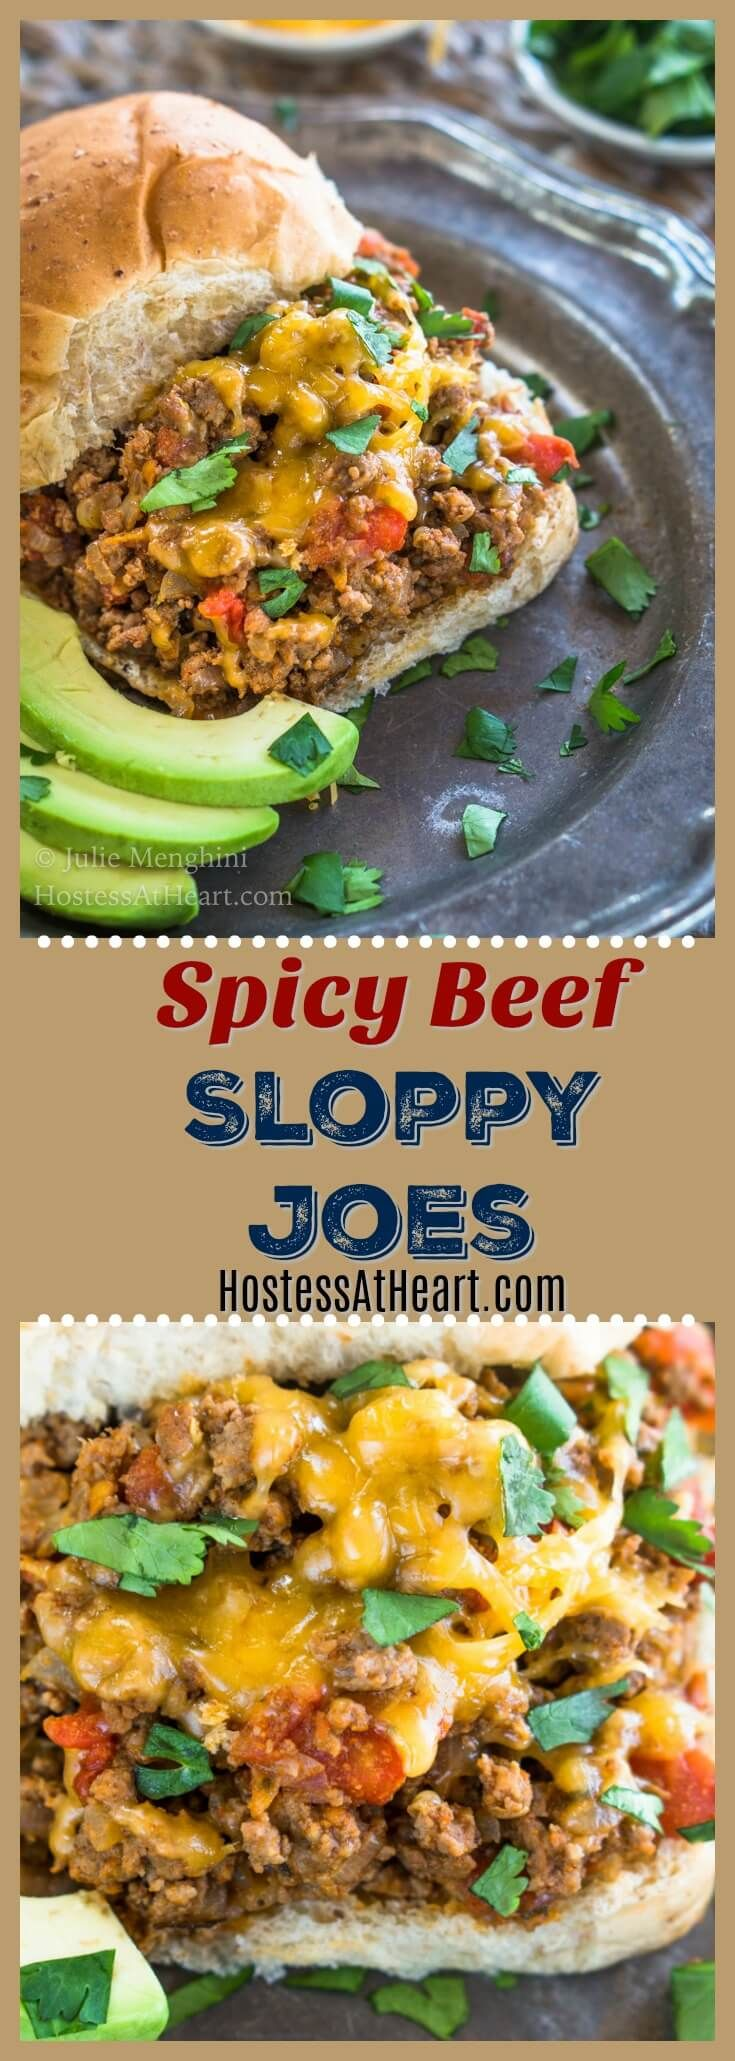 These Spicy BeefSloppy Joes can be made as spicy as you like. Be sure to grab a fork because you're going to want to pile on this filling. #MexicanFood #TacoTuesday #sloppyjoes #GroundBeef #EasyDinner |Homemade Sloppy Joes | Best Sloppy Joes | Easy Sloppy Joe Recipe via @HostessAtHeart